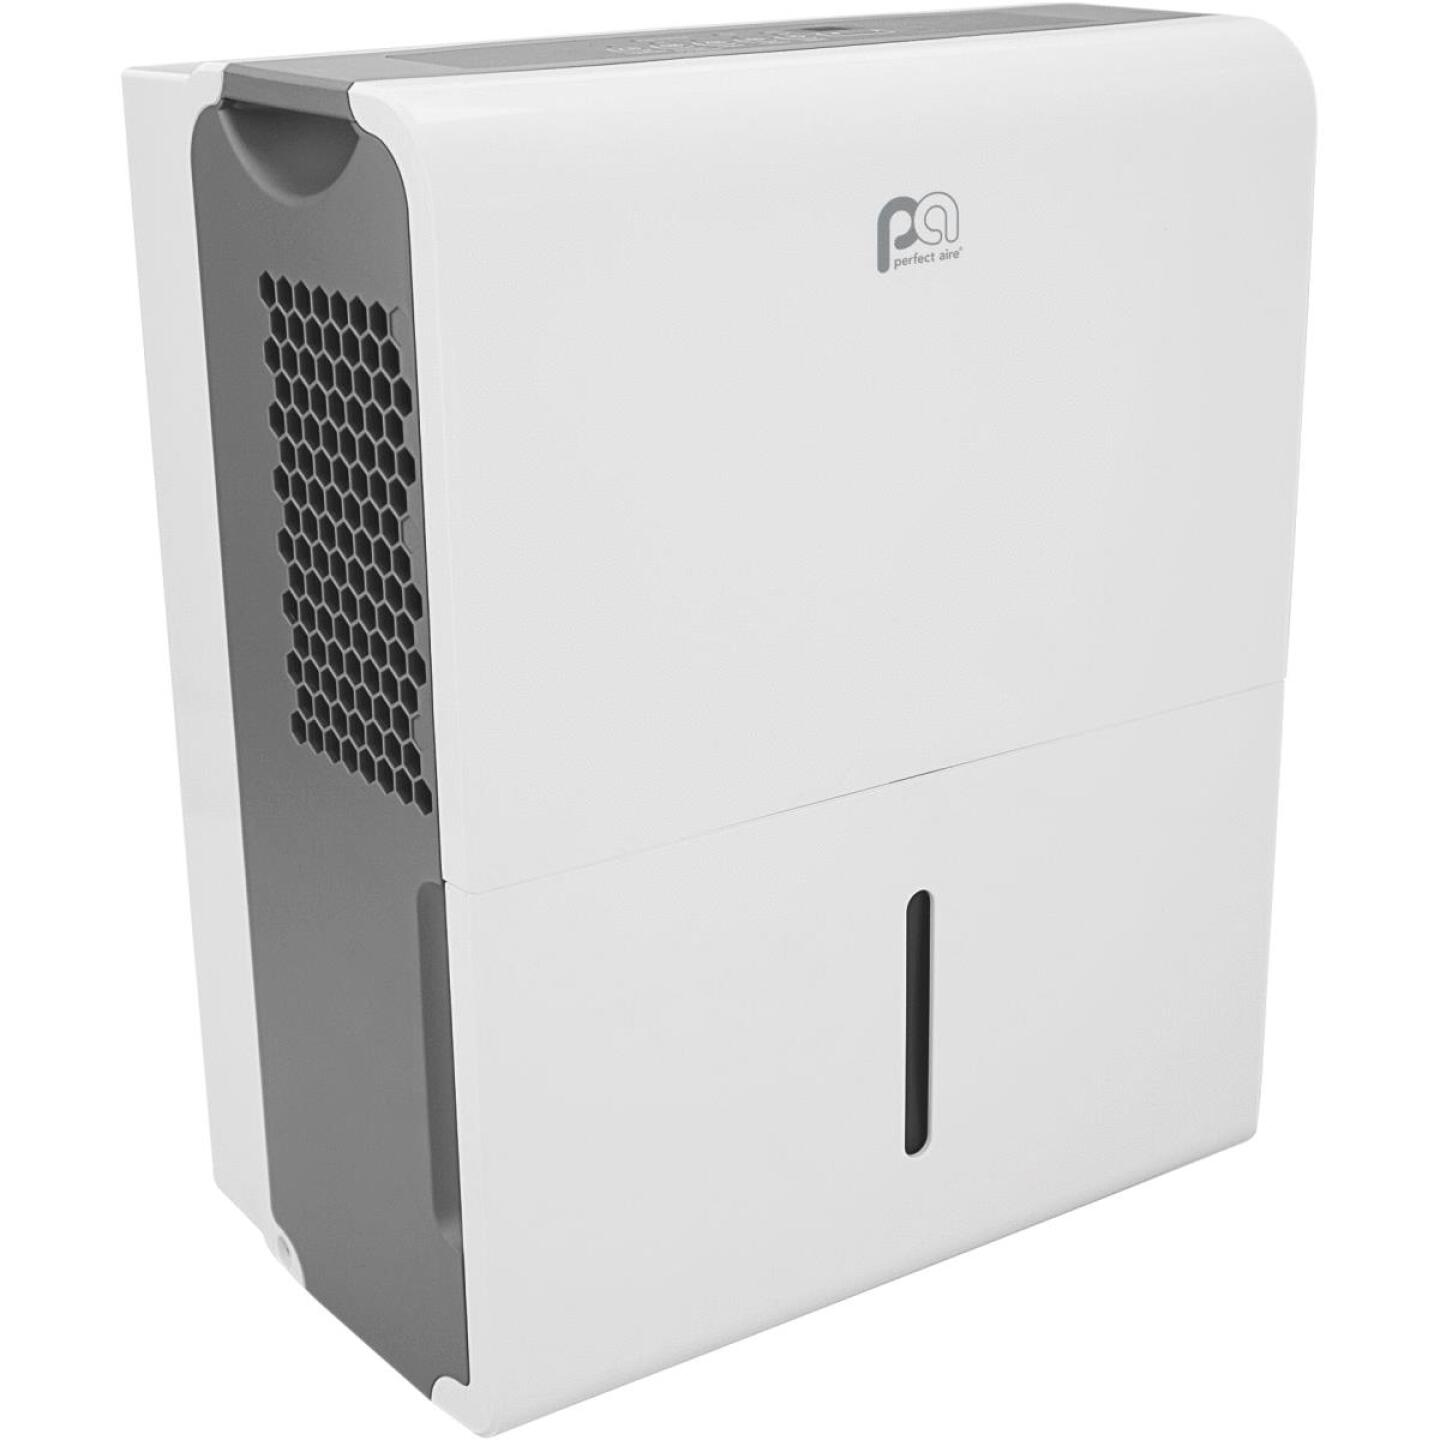 Perfect Aire 22 Pt./Day 430 Sq. Ft. Coverage 2-Speed Flat Panel Dehumidifier Image 3